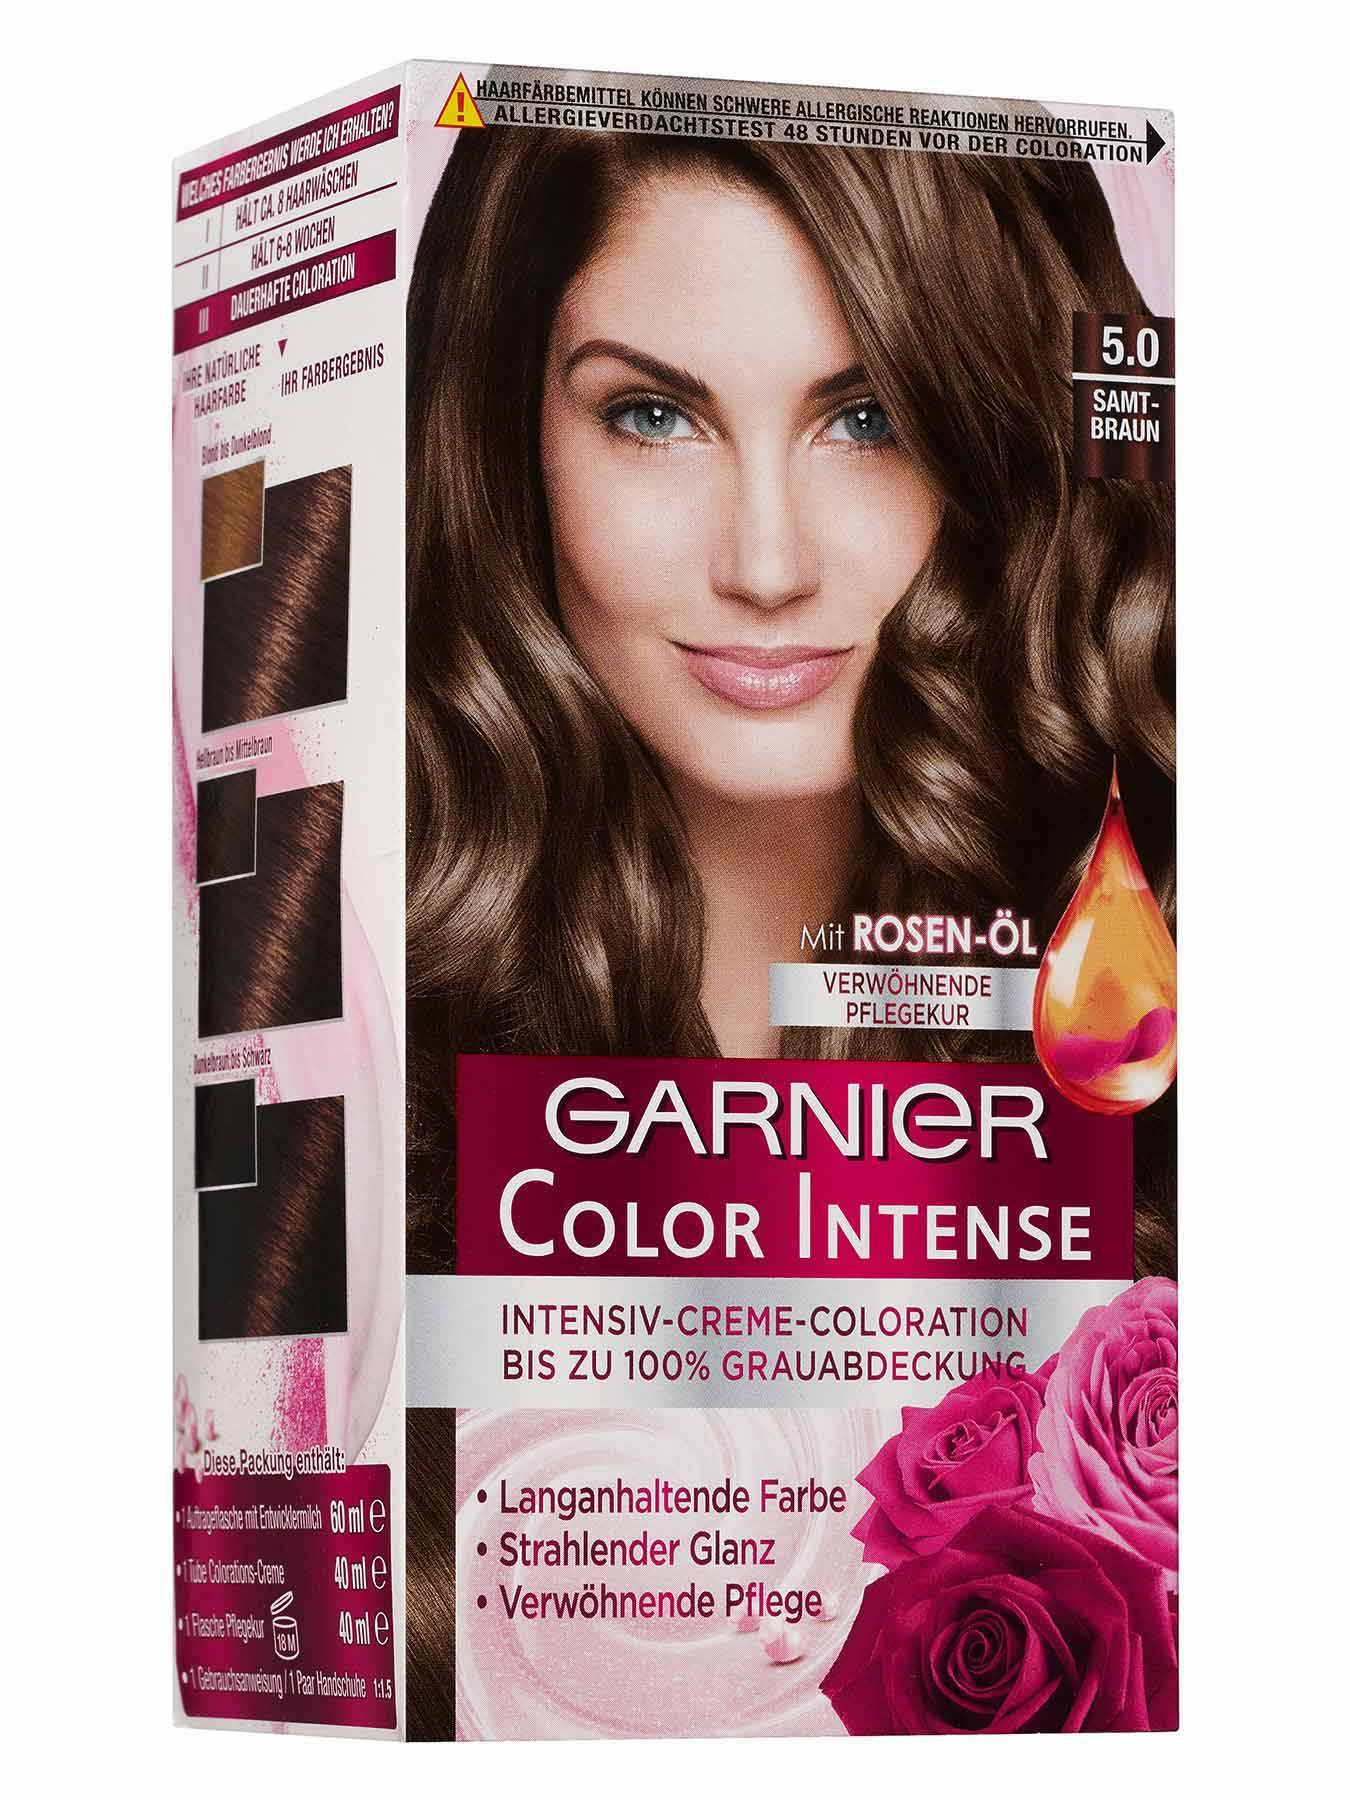 5-0-Samtbraun-Intensiv-Creme-Coloration-Color-Intense-1Stk-Vorderseite-Garnier-Deutschland-gr